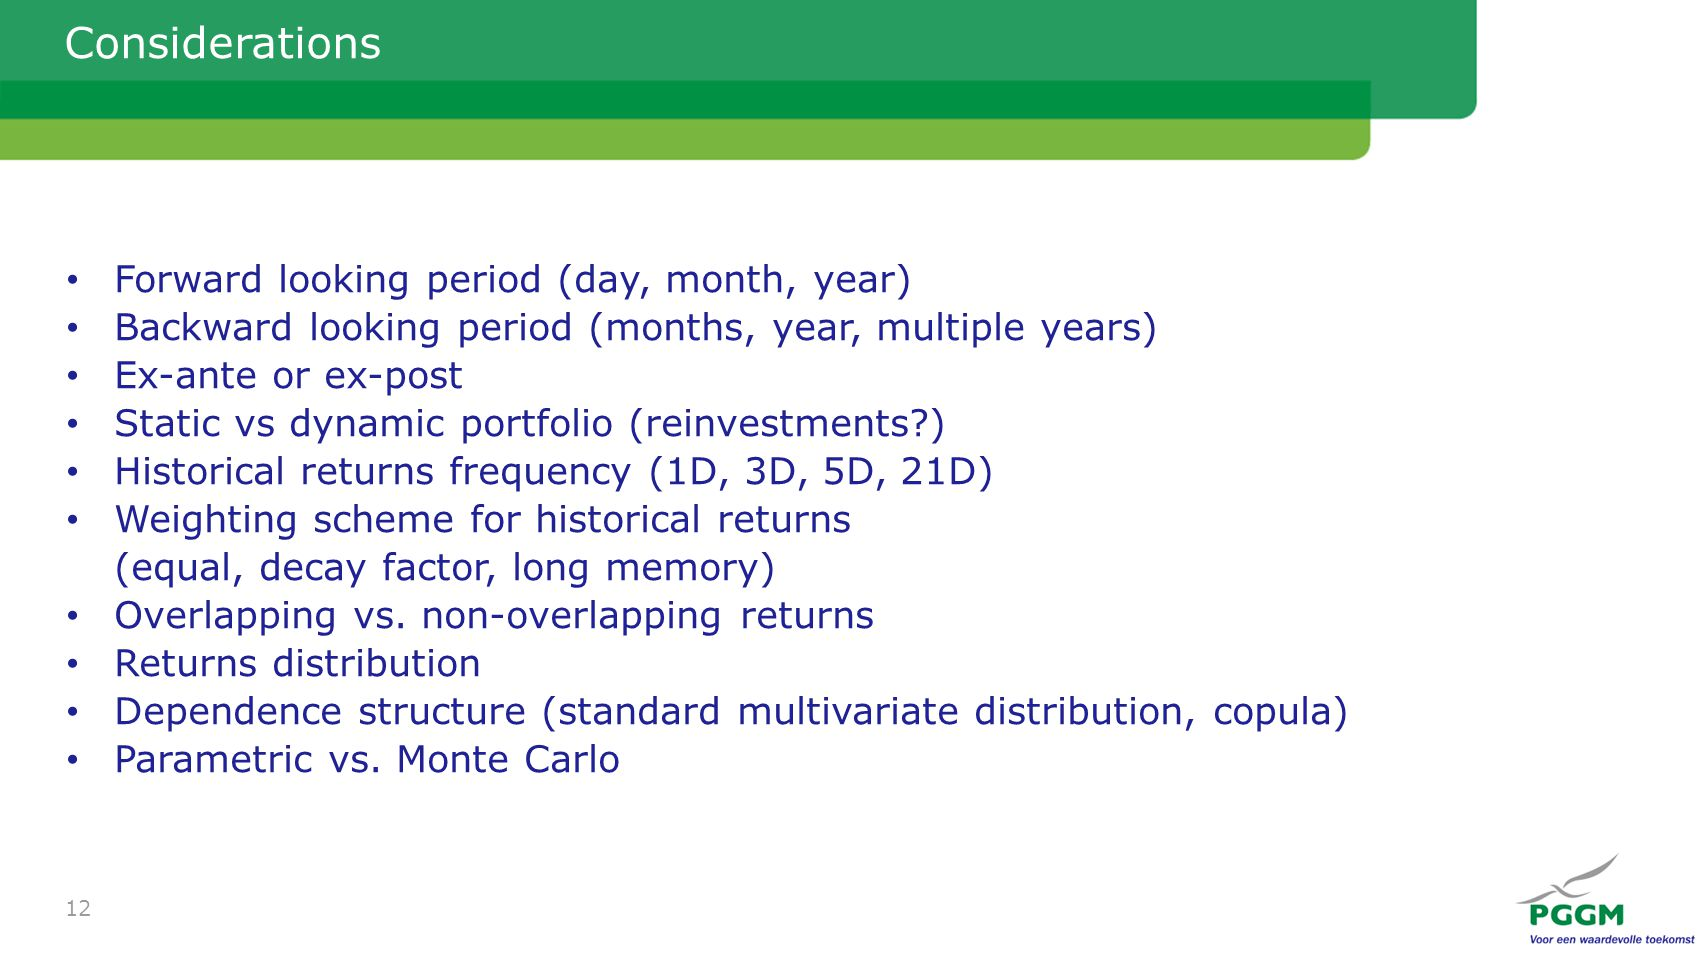 Considerations Forward looking period (day, month, year) Backward looking period (months, year, multiple years) Ex-ante or ex-post Static vs dynamic p